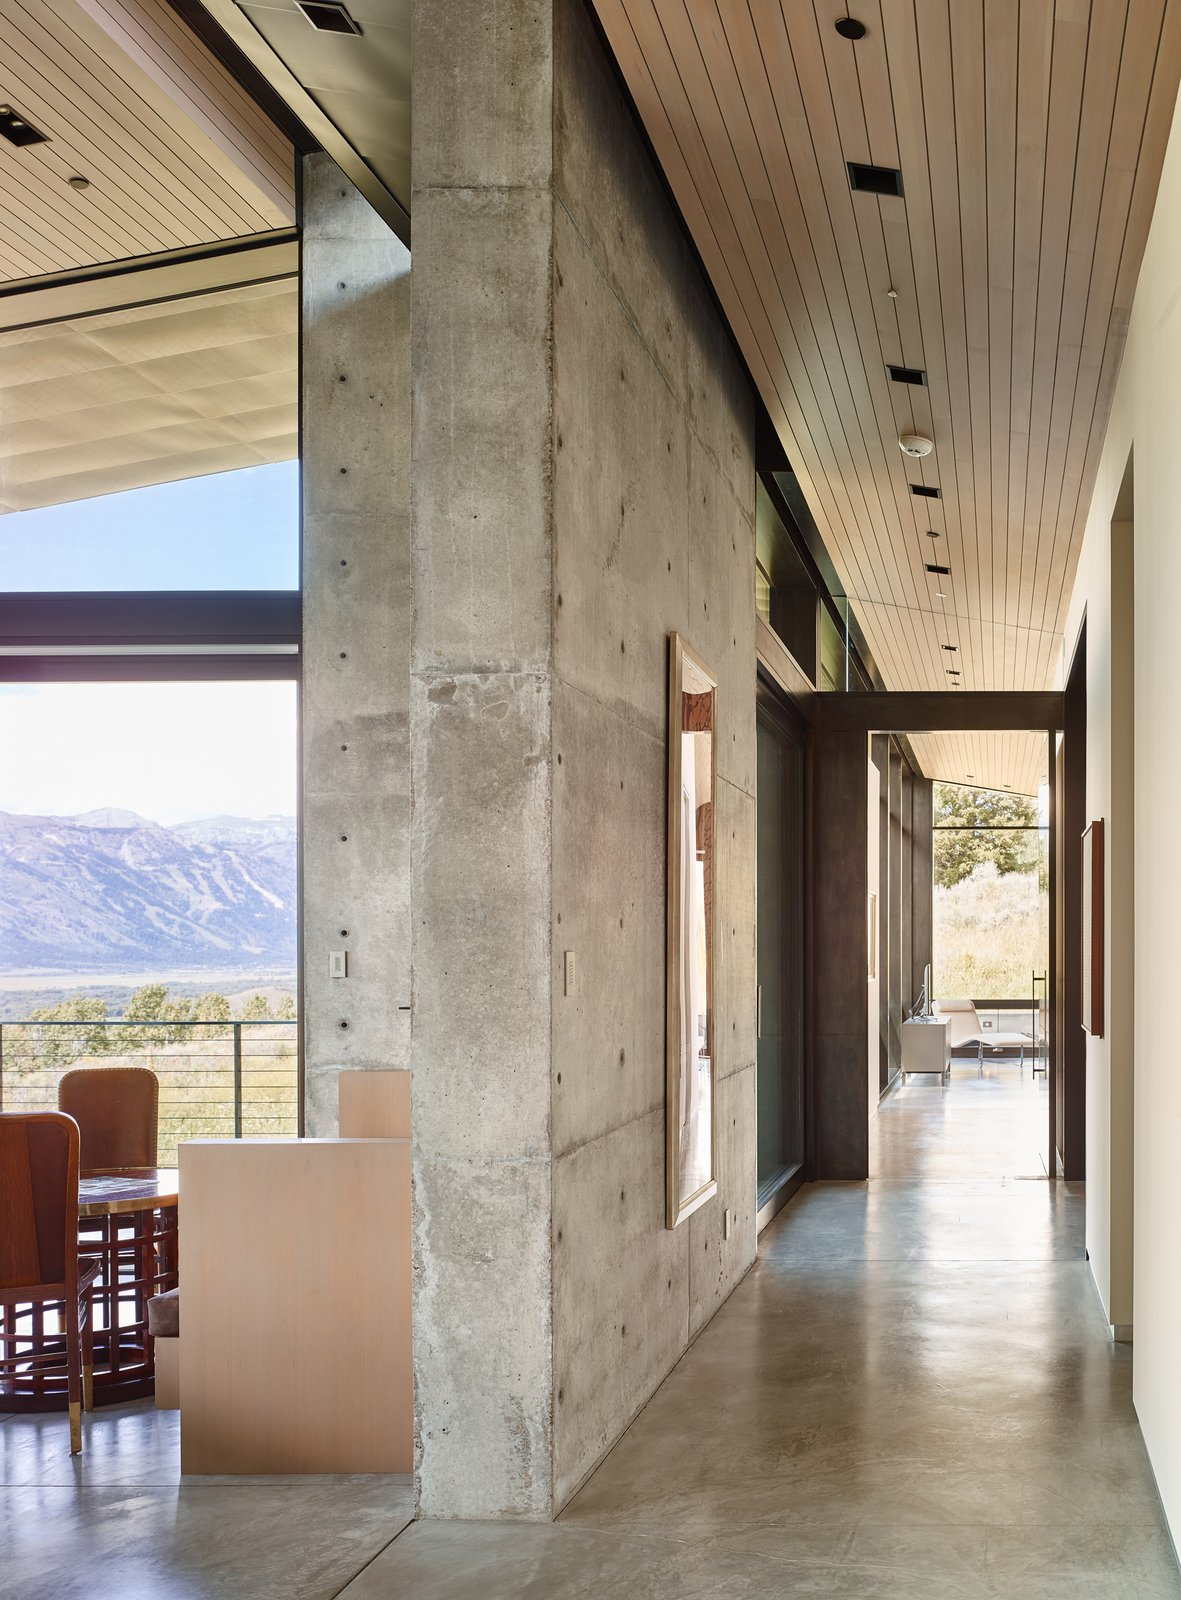 Once inside, natural light serves as an important material layered amongst its solid counterparts. Wood ceilings sit slightly pulled back from the walls to create a feeling of expansiveness.   Wyoming Residence by Abramson Teiger Architects